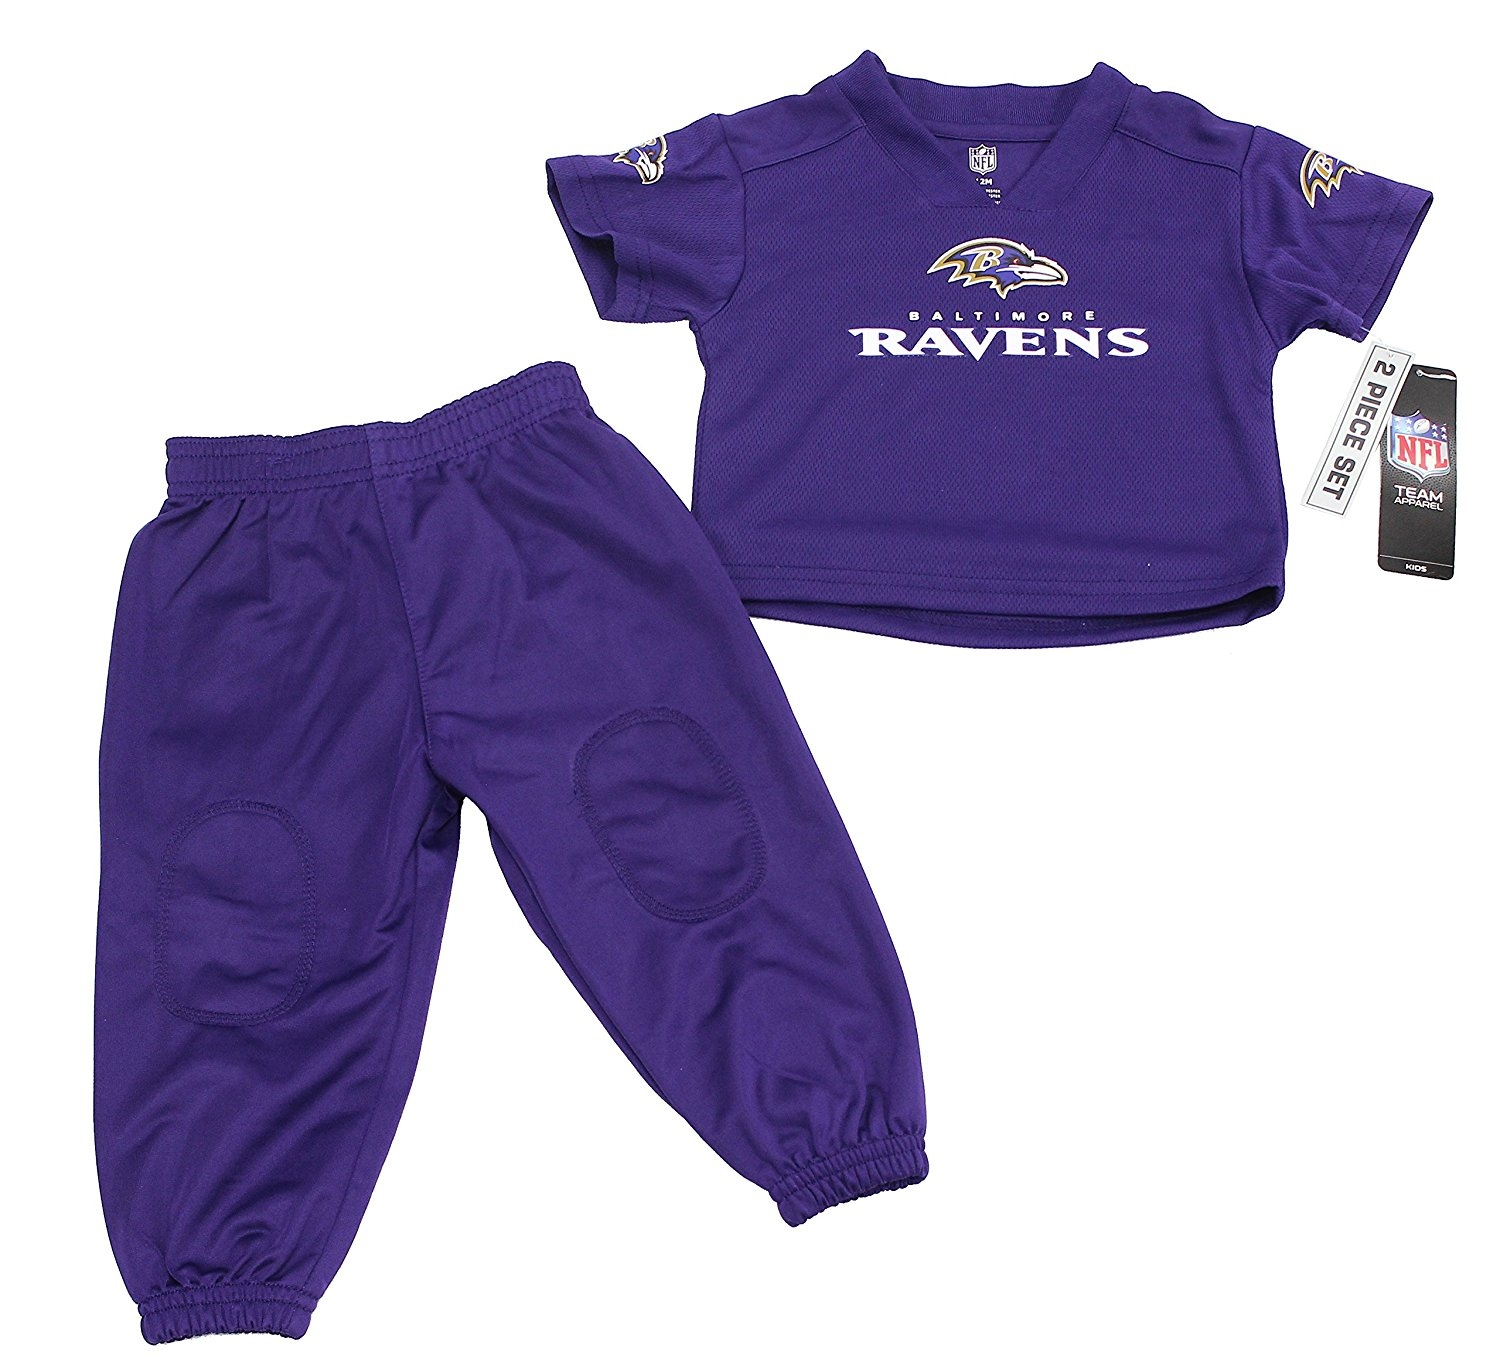 Outerstuff Baby Boy's Baltimore Ravens Football 2 Piece Pants Set by Outerstuff